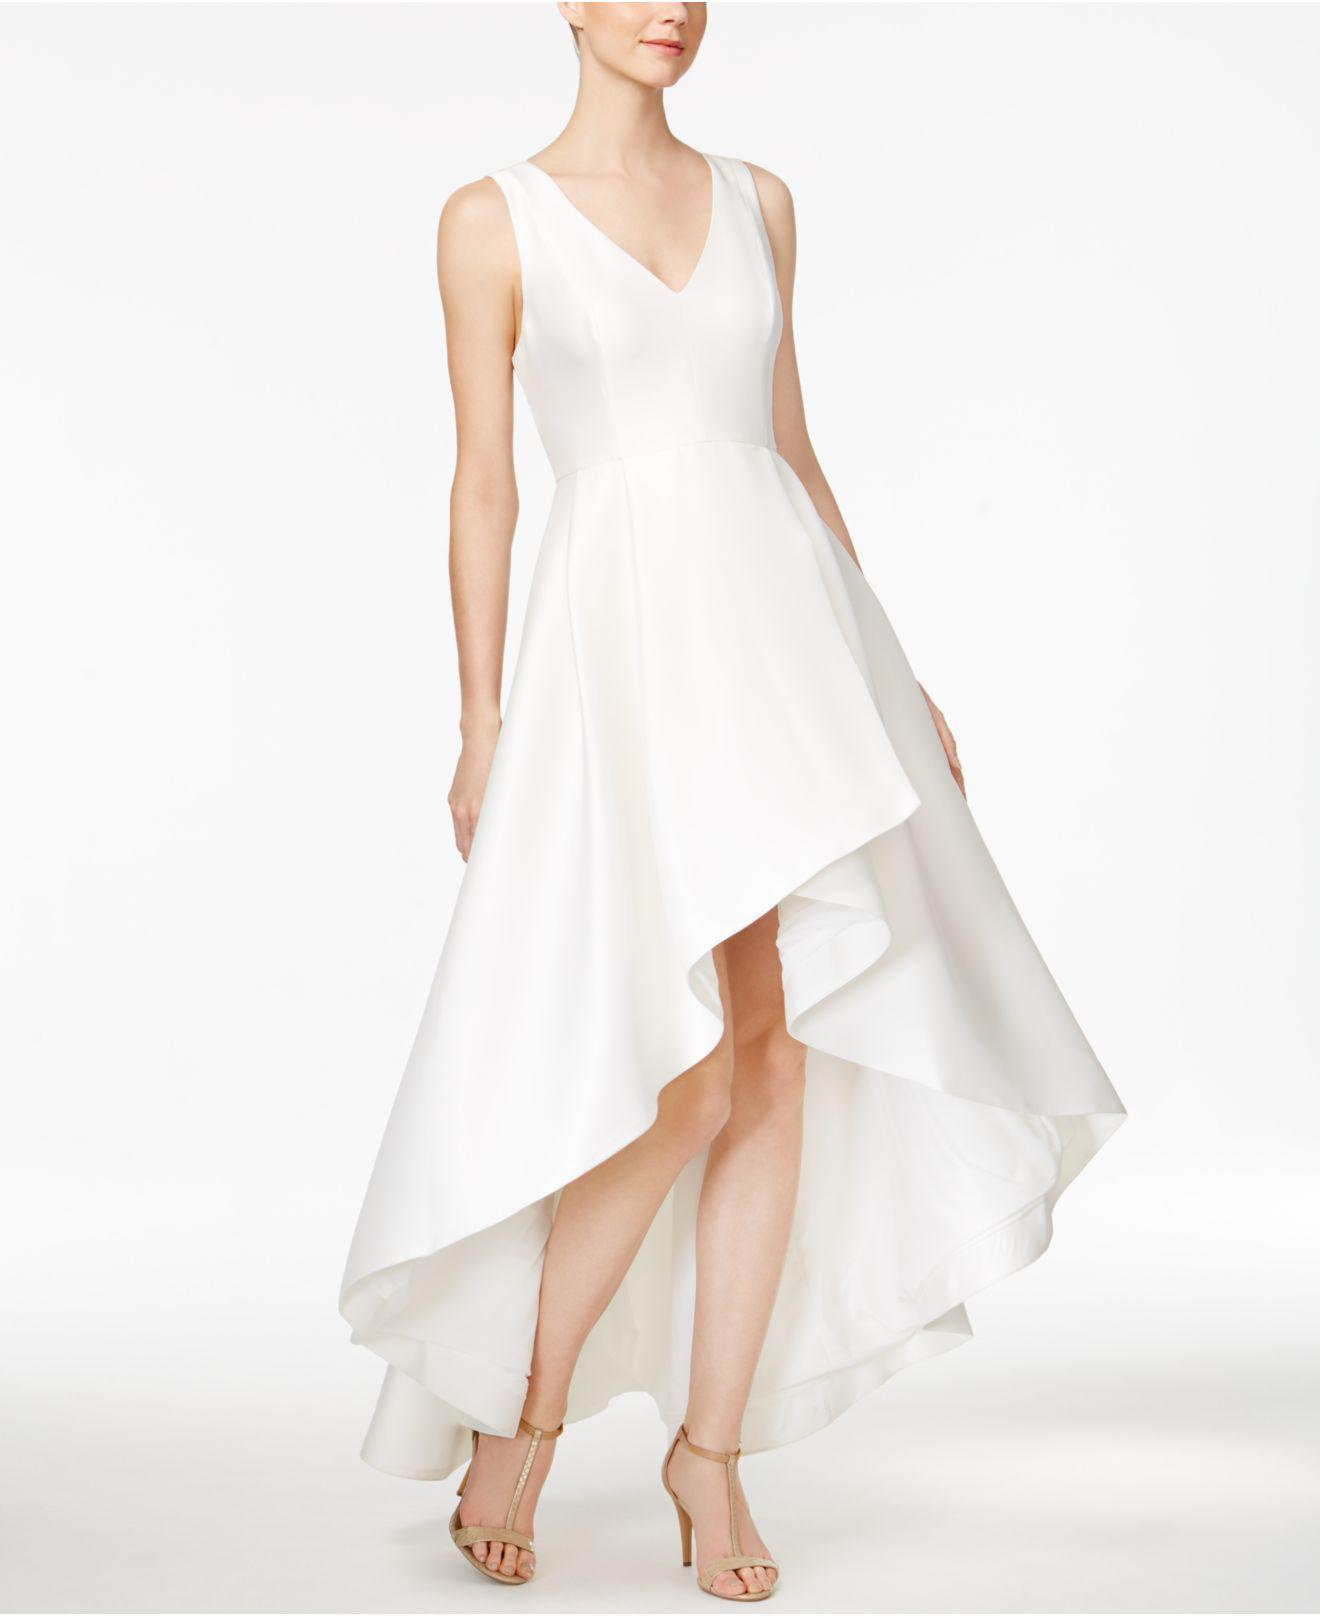 53a538ccf4a8 Lyst - Calvin Klein High-low A-line Gown in White